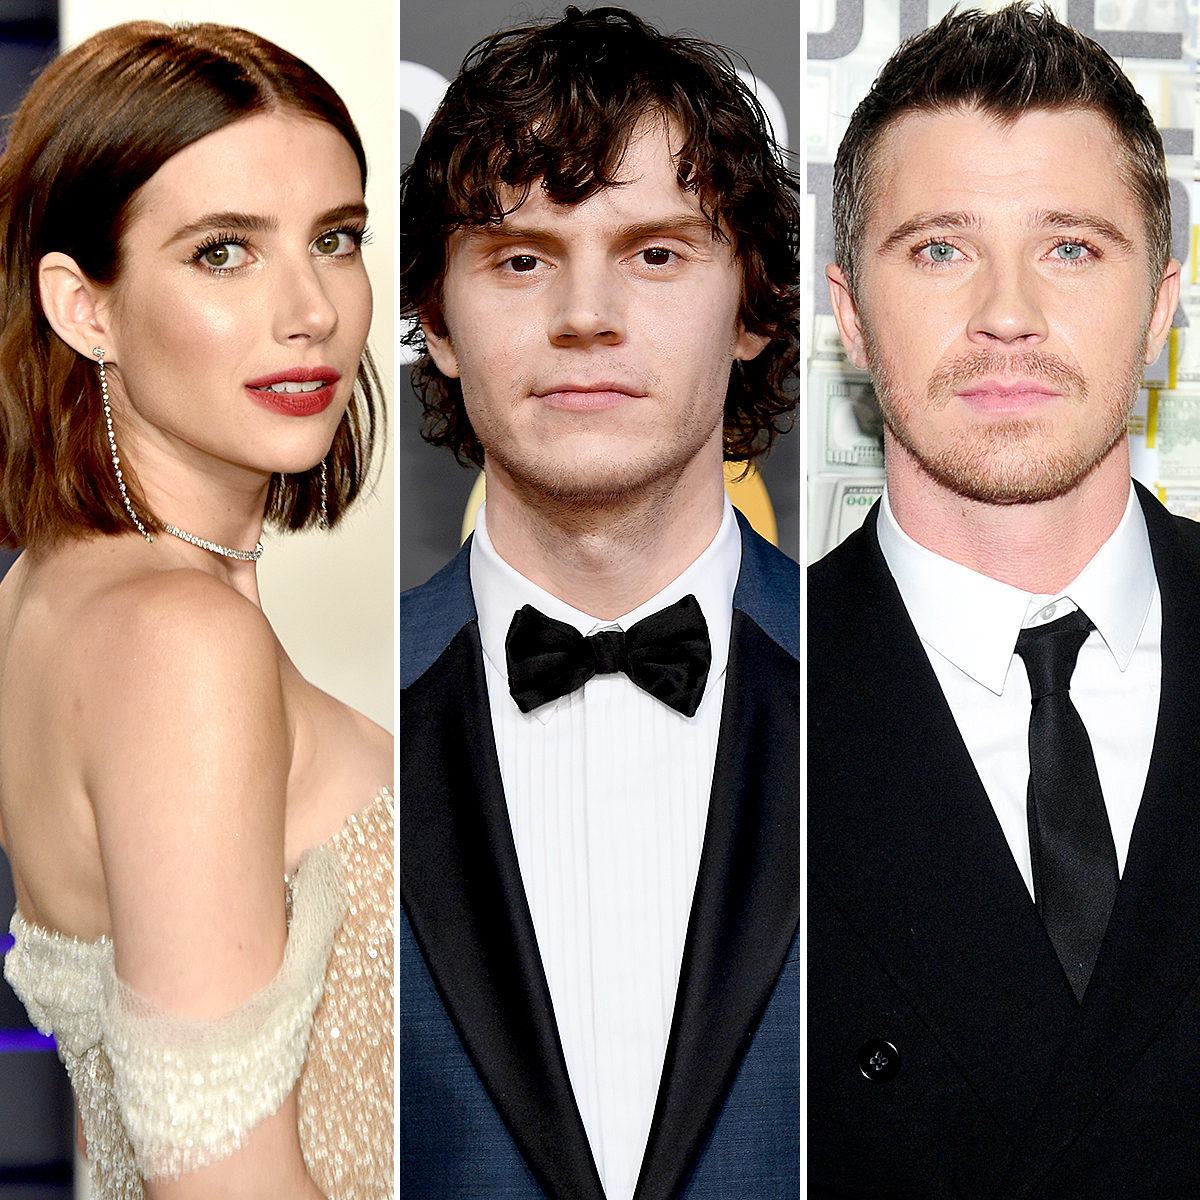 Emma-Roberts-Splits-With-Evan-Peters-Moves-On-With-Garrett-Hedlund